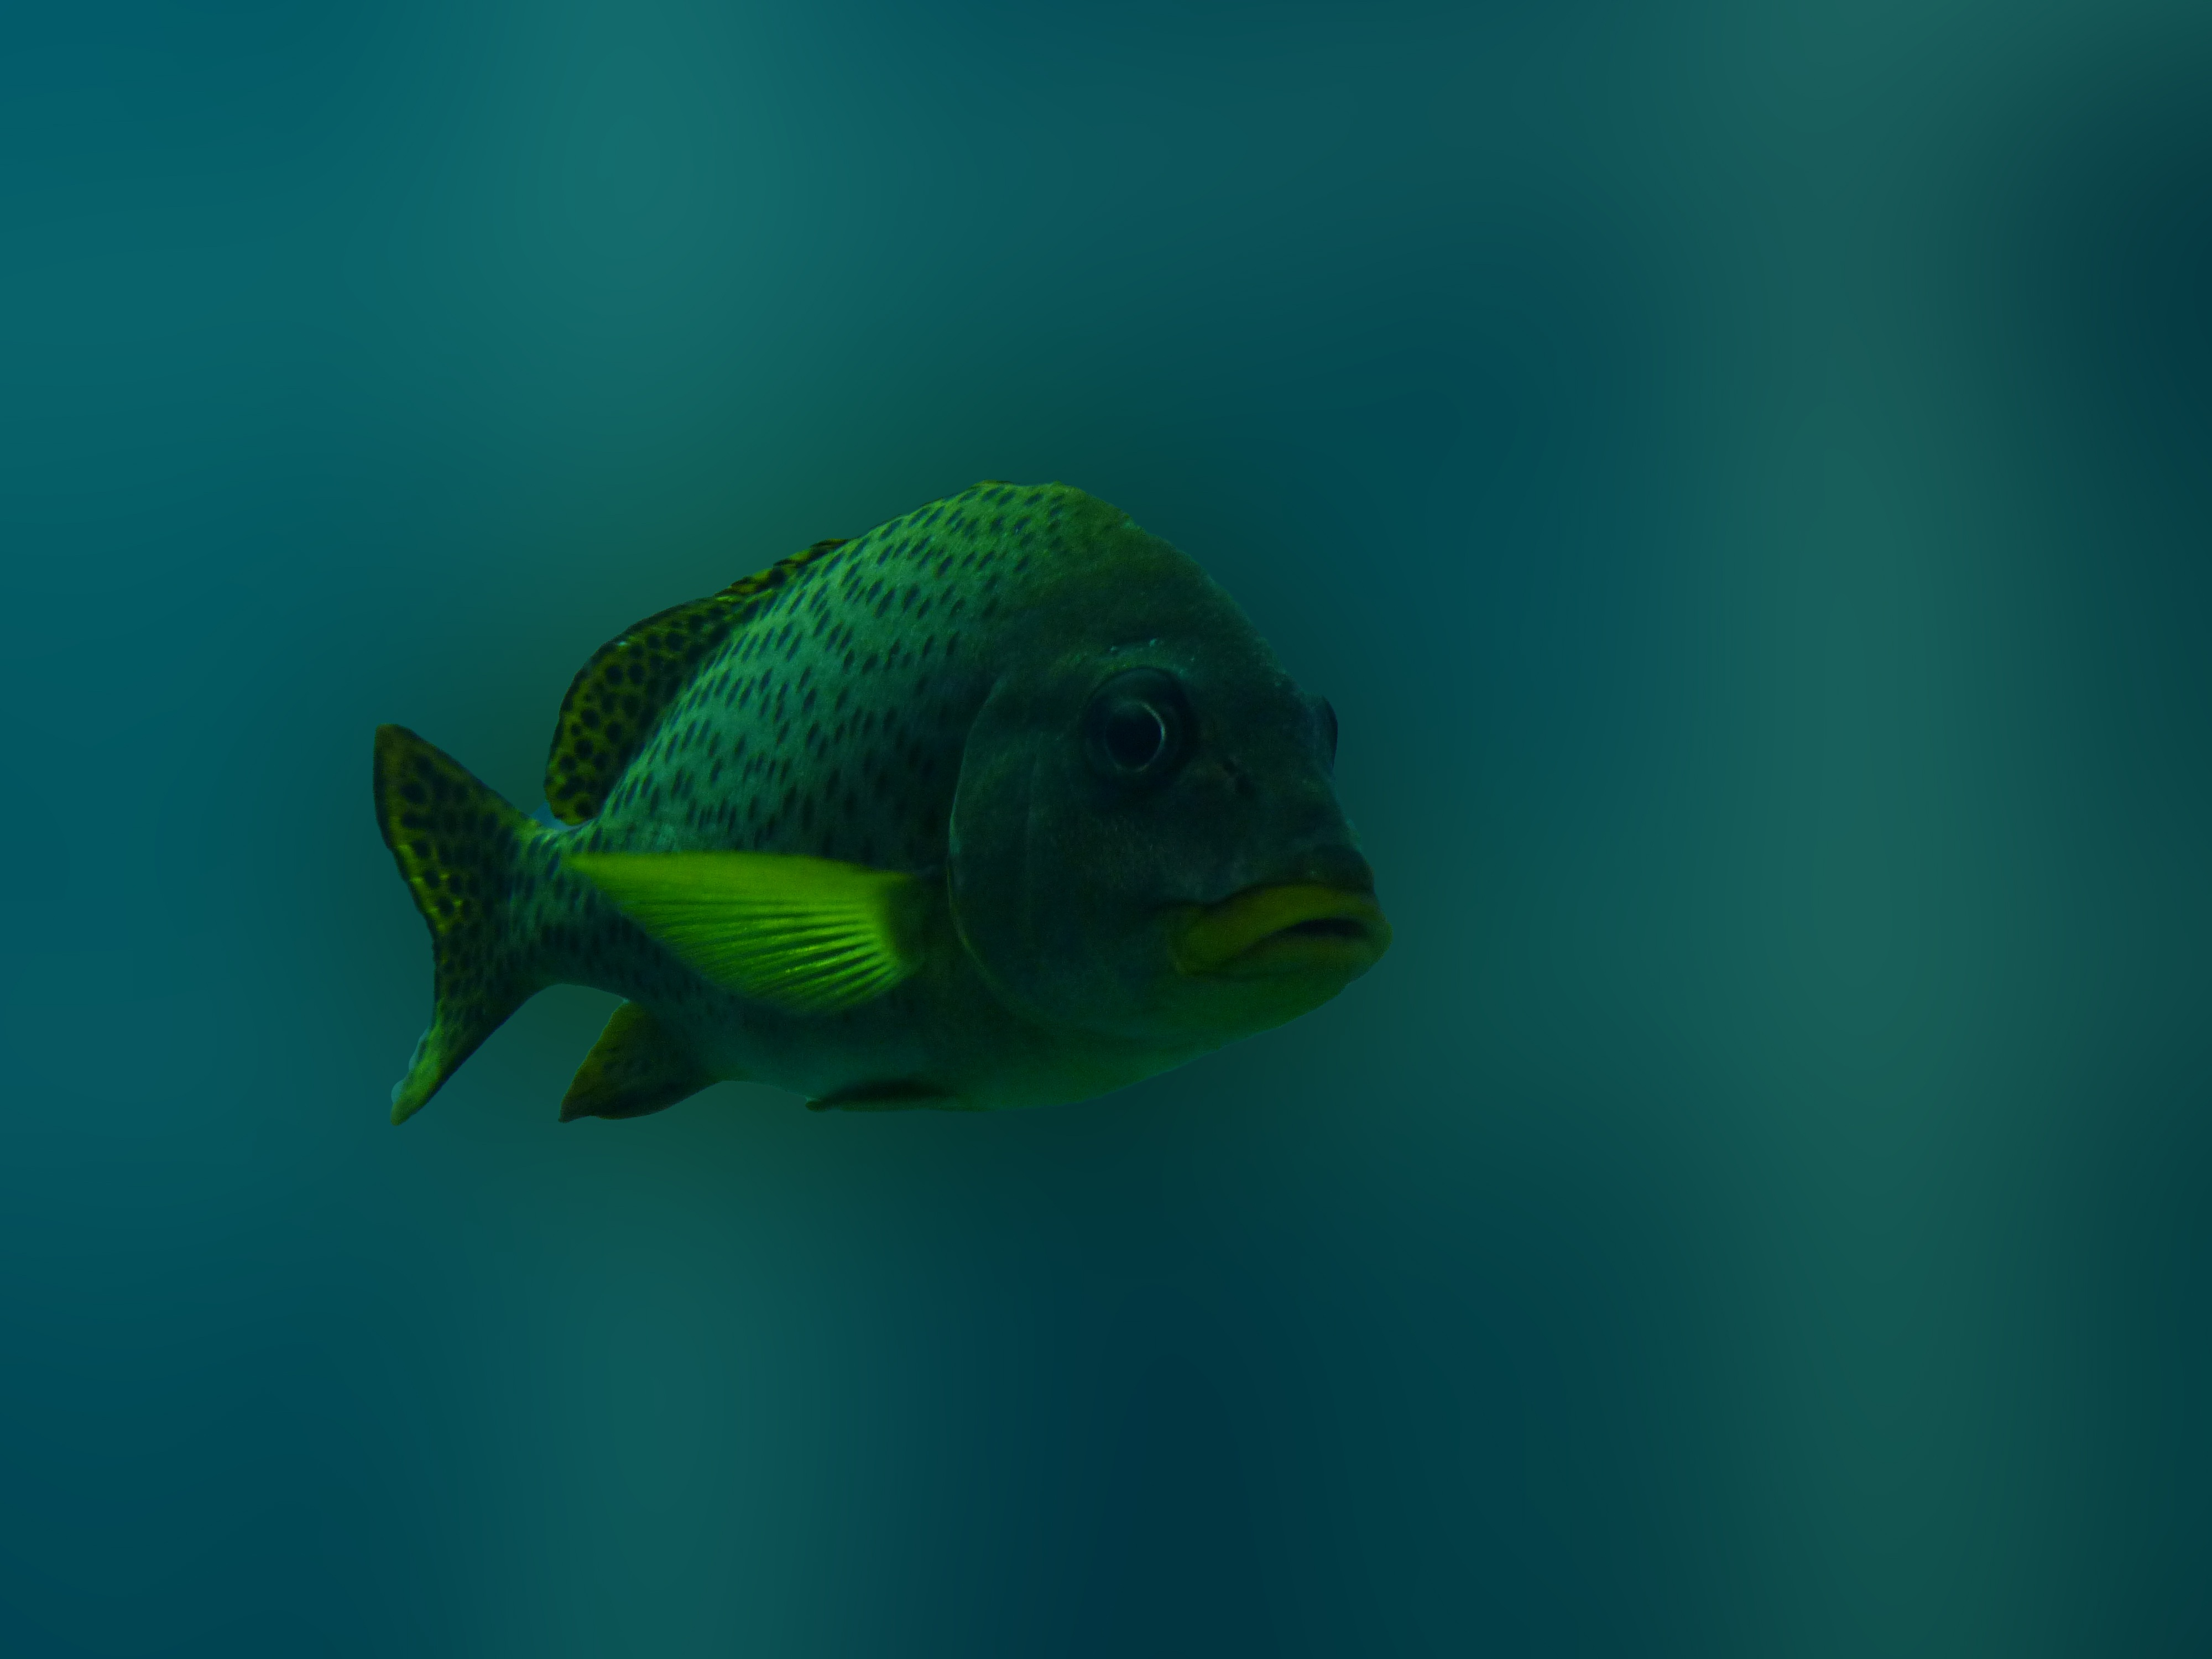 Lonely fish is swimming in dirty water free image